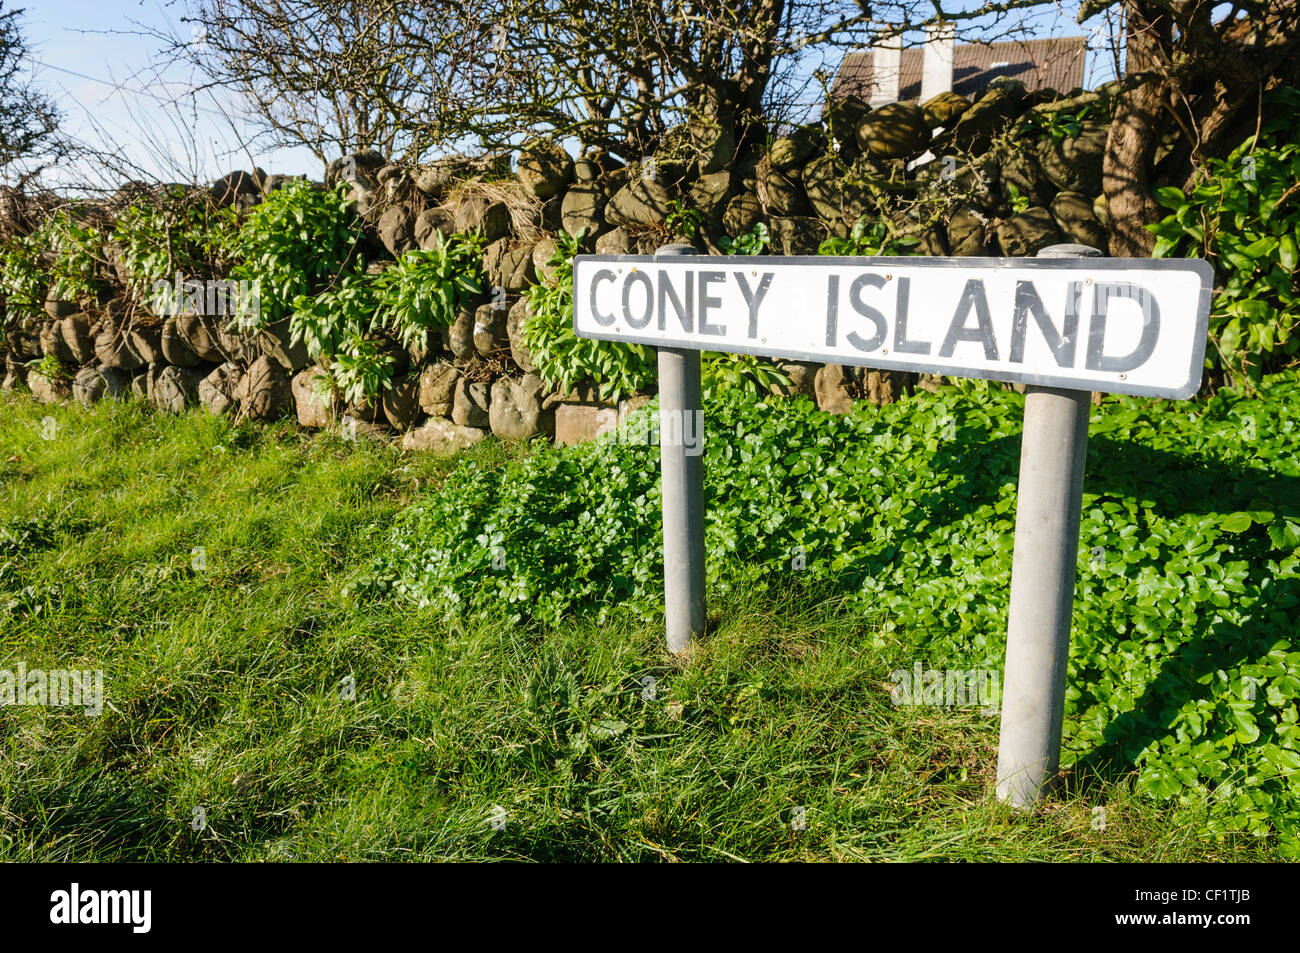 Road sign for Coney Island. Location used in the 2012 Oscar winning short film 'The Shore' by Terry George. - Stock Image